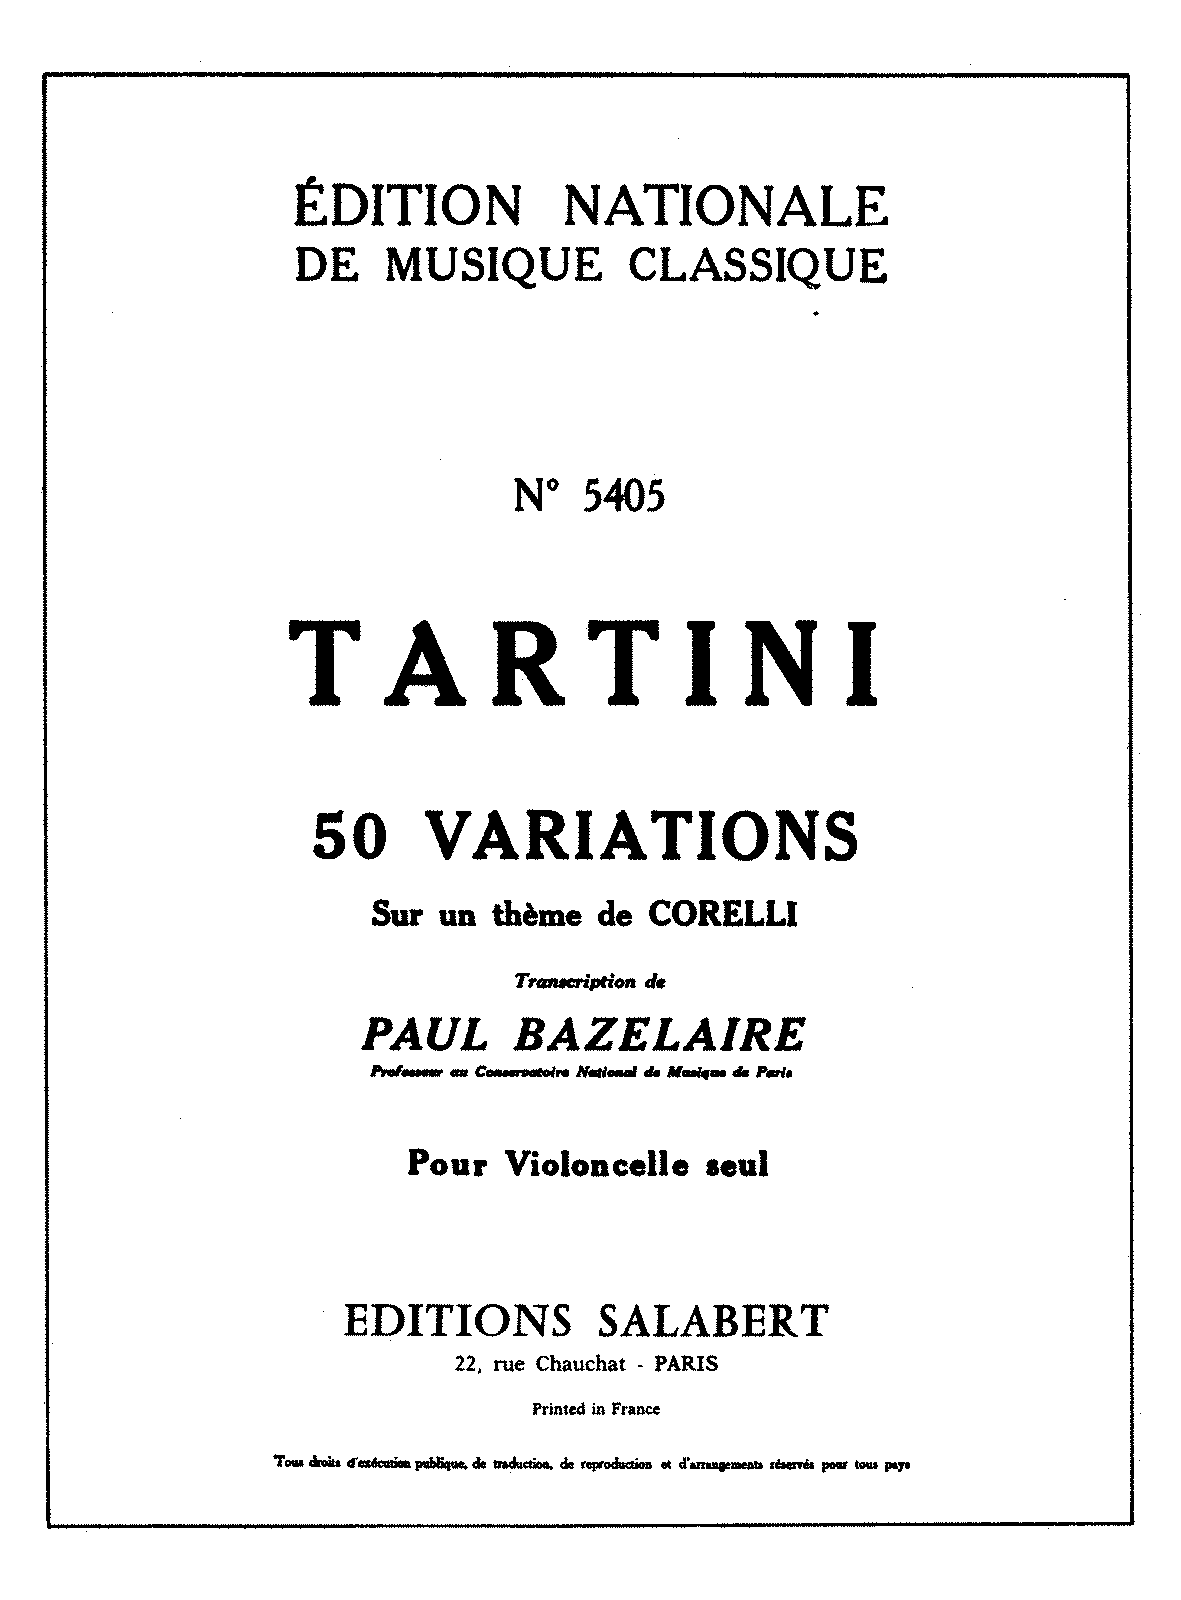 PMLP09402-Tartini - 50 Variations sur un theme de Corelli (Paul Bazelaire) for Cello solo and Piano.pdf